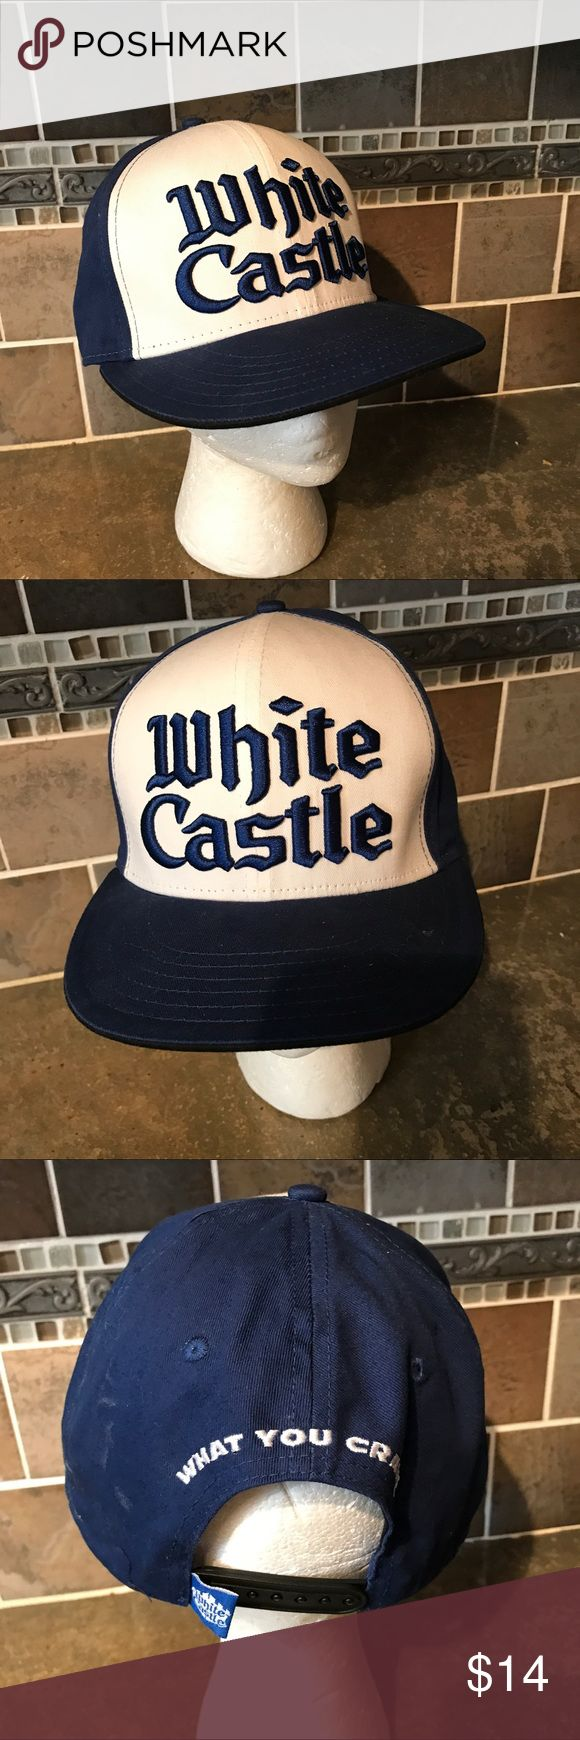 White Castle hamburgers burger snap back hat A1480 White Castle snap back hat white blue, gently used condition with no holes or rips, bright color, snap back, 1 day handling, 30 day returns, thank you white castle Accessories Hats